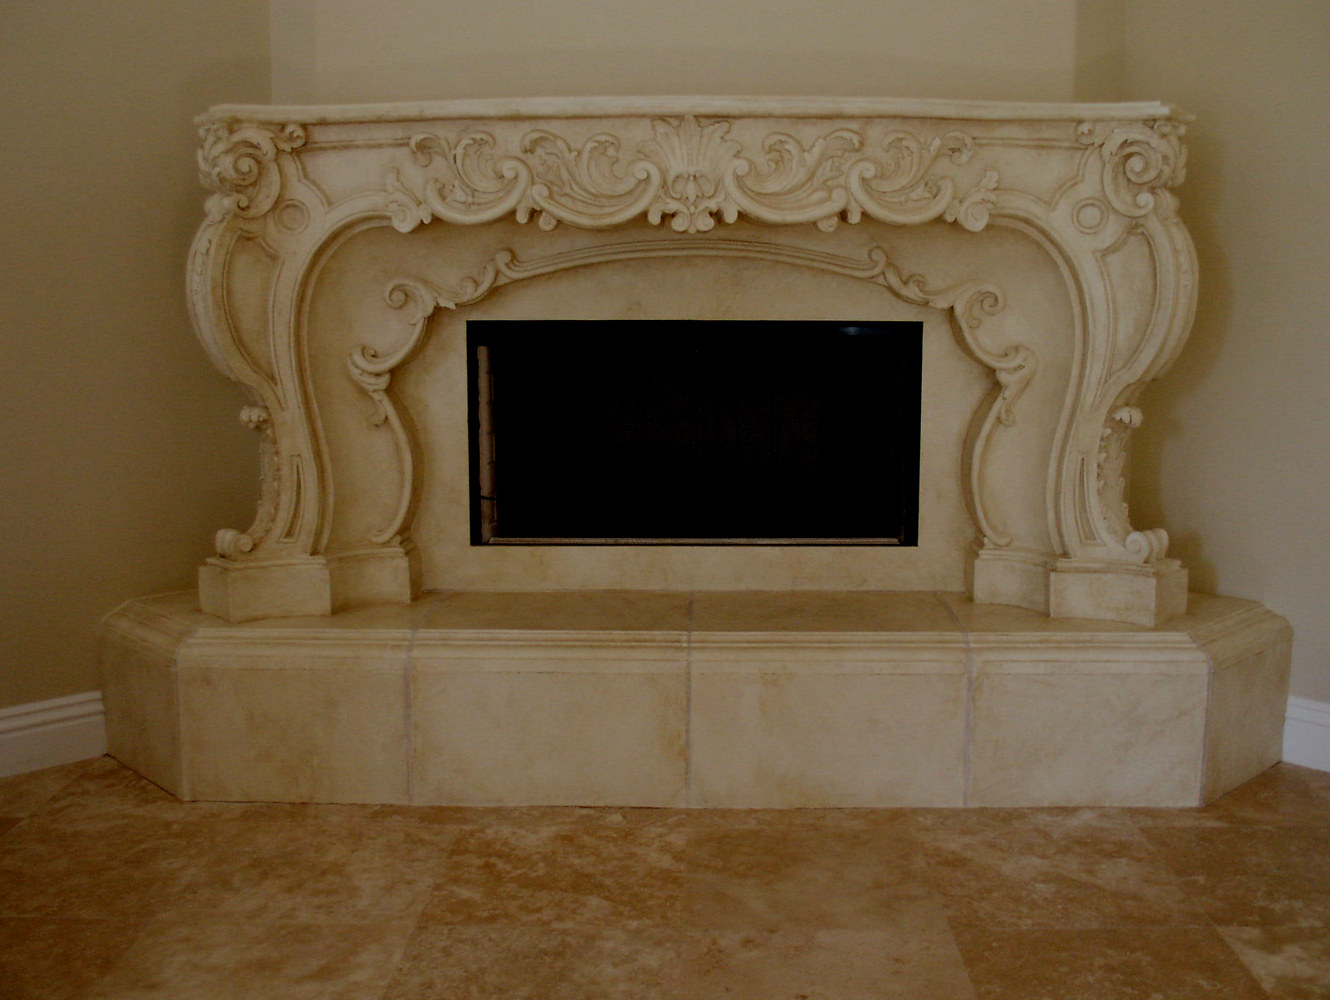 aged Hearth and fireplace by Robert Milling